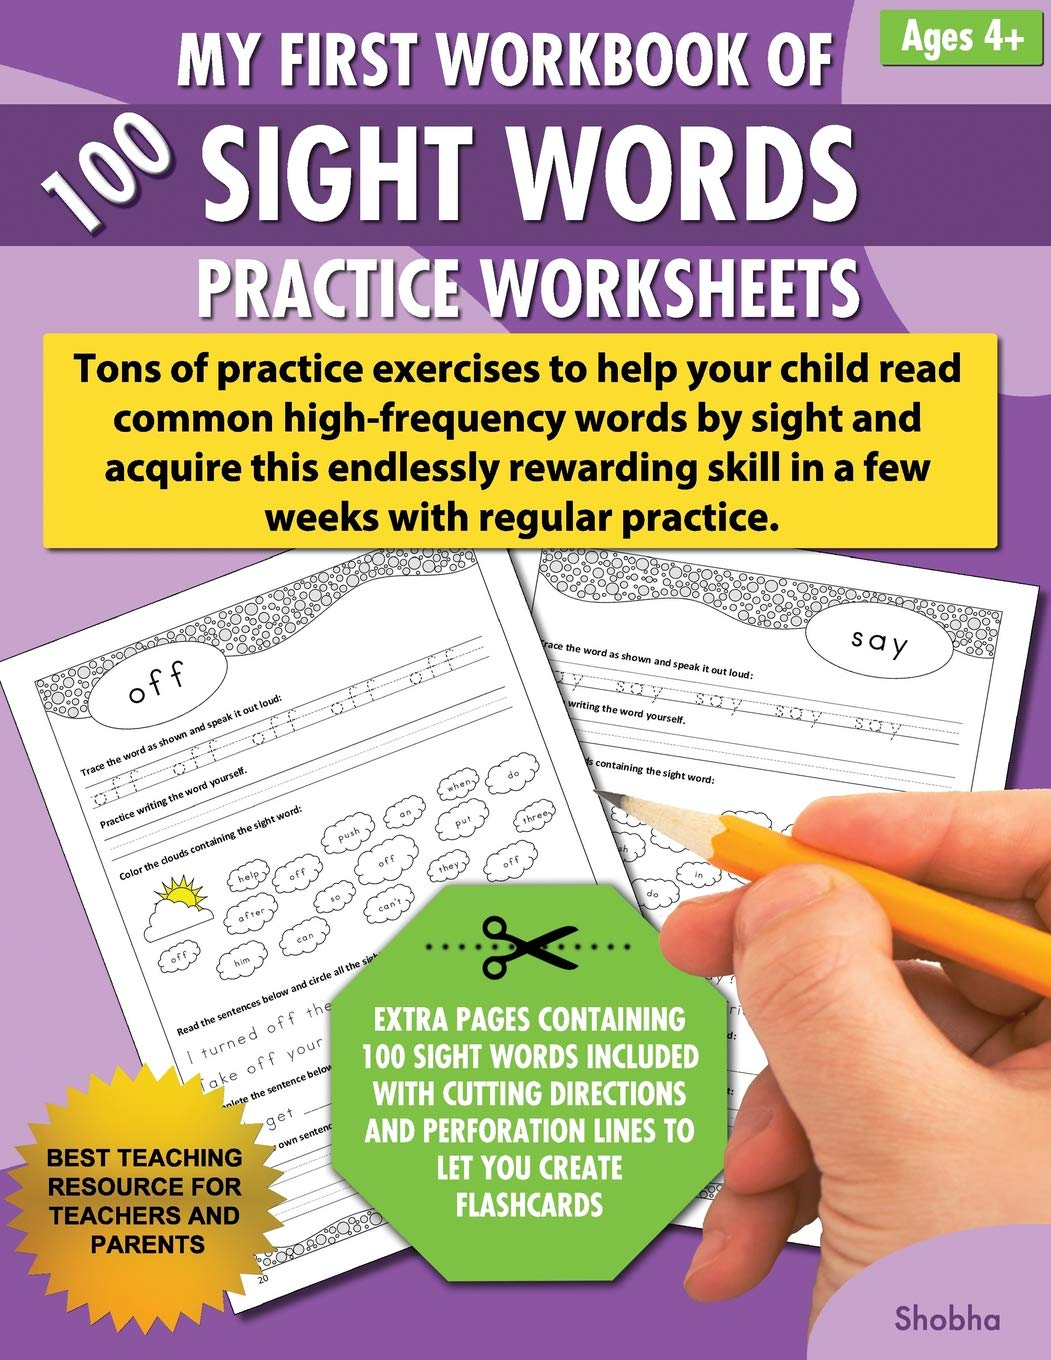 - My First Workbook Of 100 Sight Words Practice Worksheets